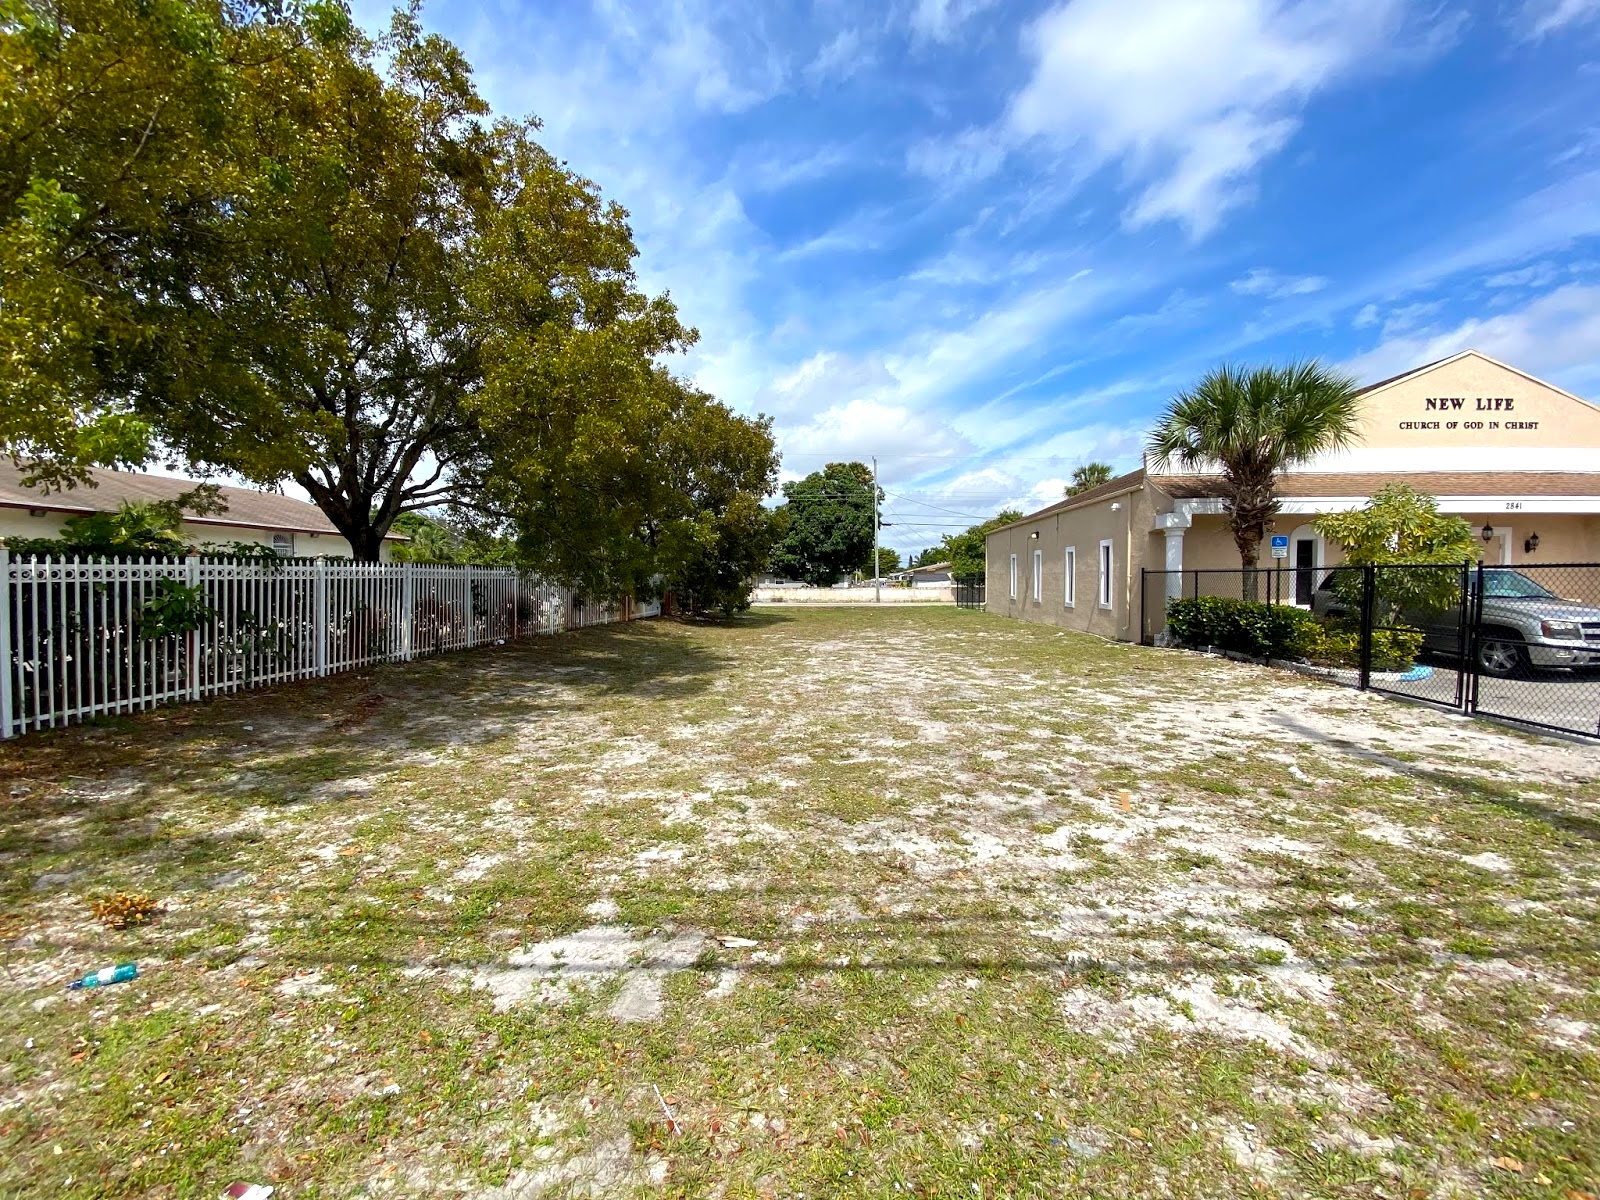 Cheap Commercial Land for Sale in Fort Lauderdale Florida